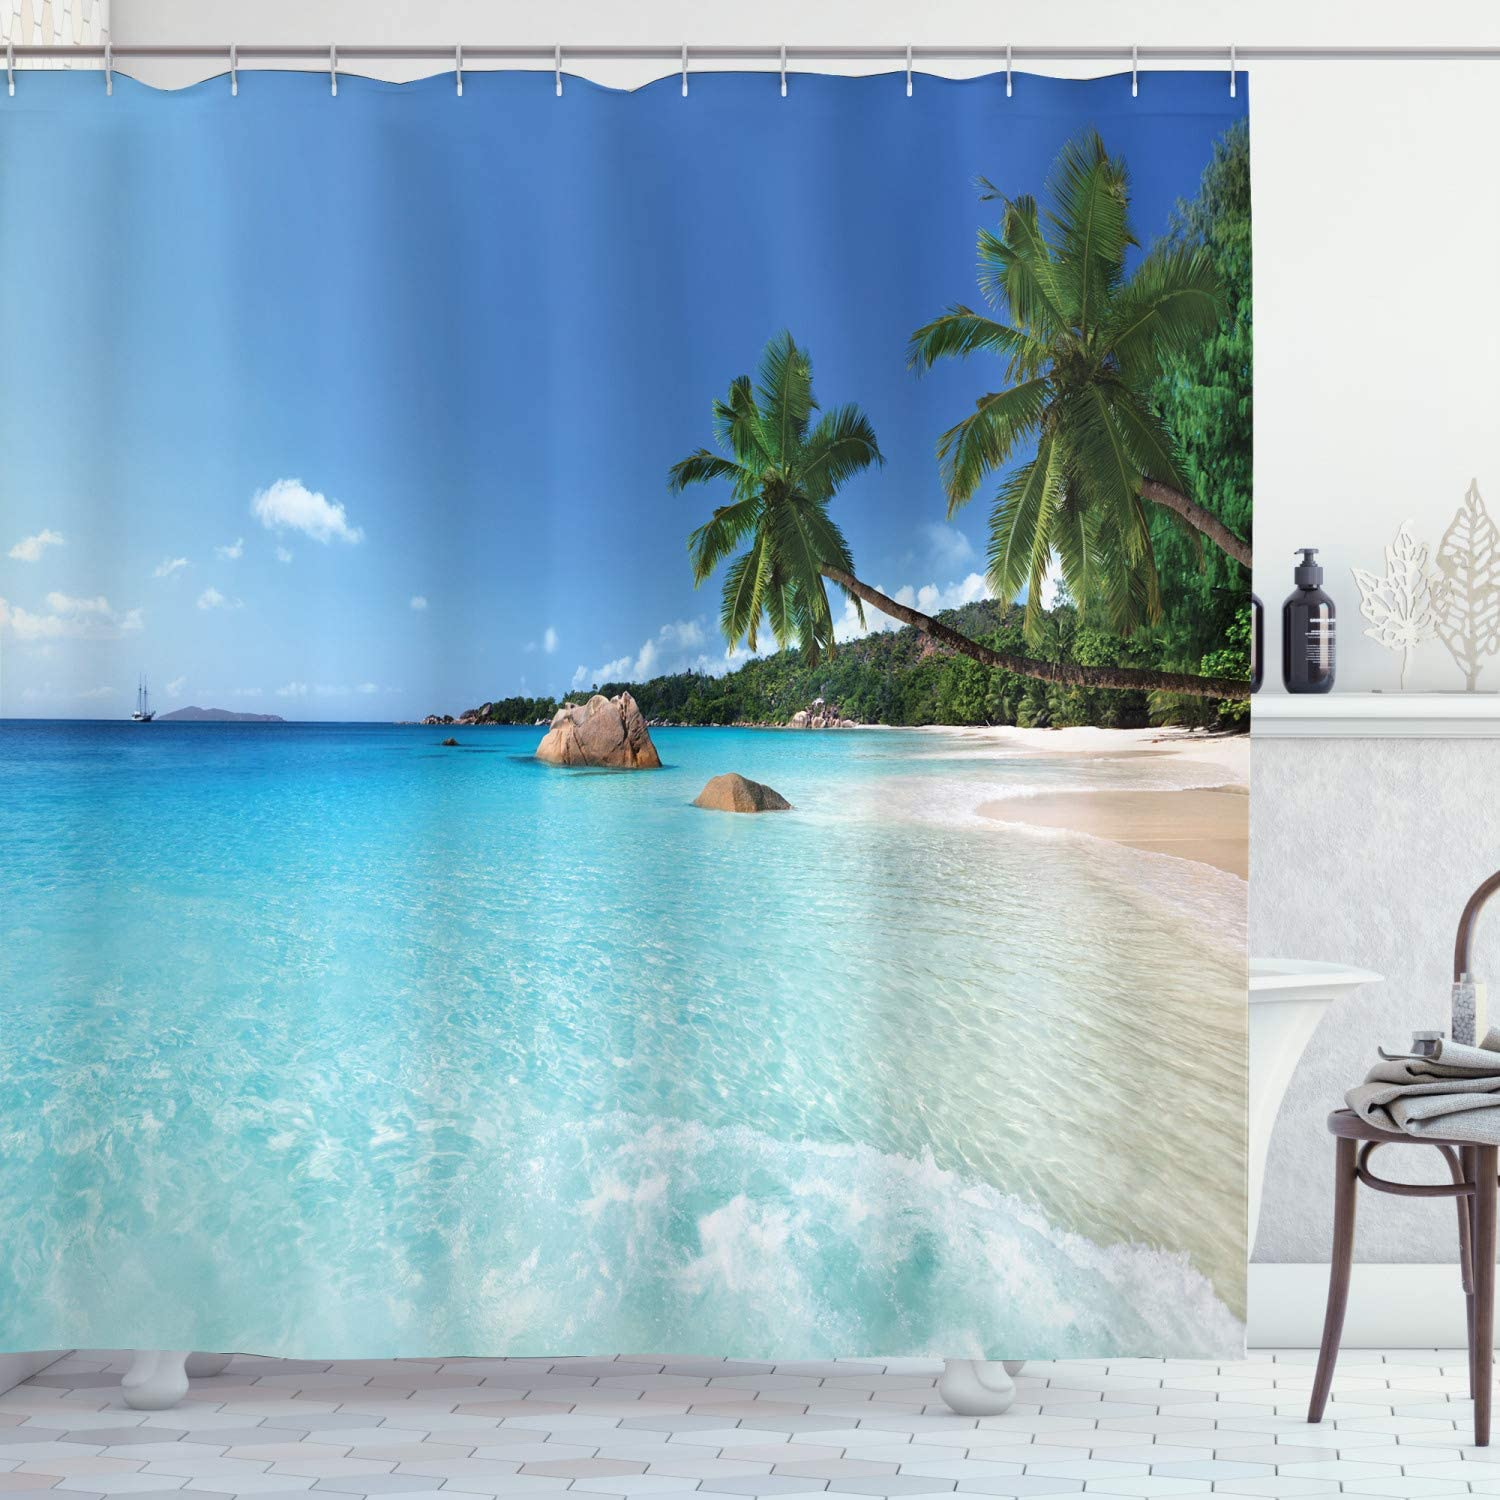 Ambesonne Ocean Shower Curtain, ANSE Lazio Beach at Praslin Island Surfing Beach Scenic View, Cloth Fabric Bathroom Decor Set with Hooks, 84 Long Extra, Blue Turquoise